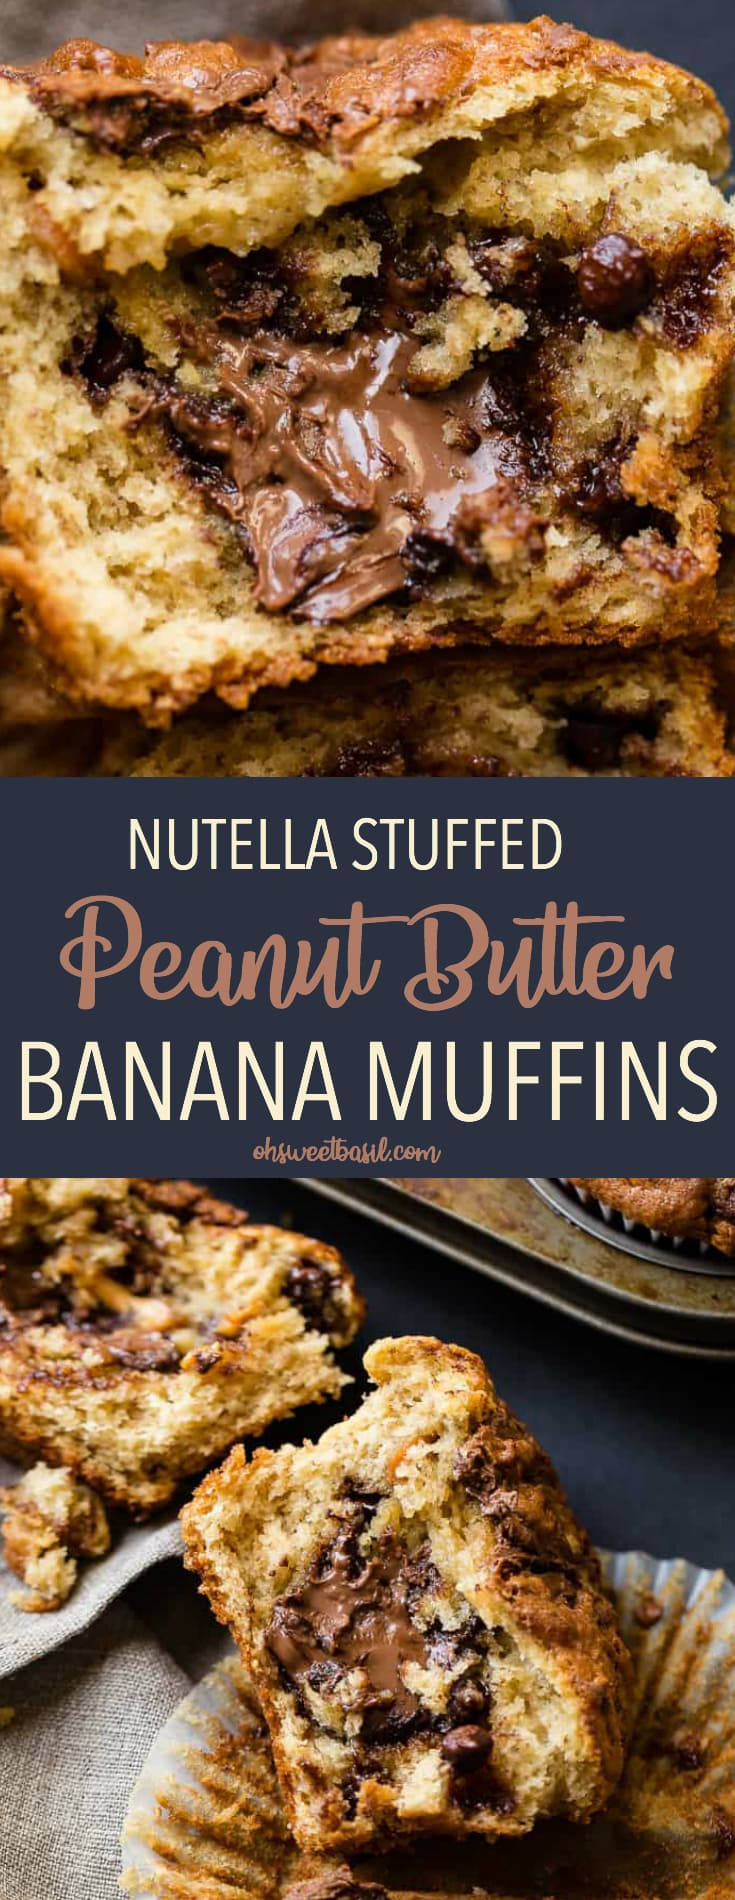 peanut butter banana muffins loaded with chocolate chips, peanut butter chips, stuffed with nutella and nutella swirled on top!